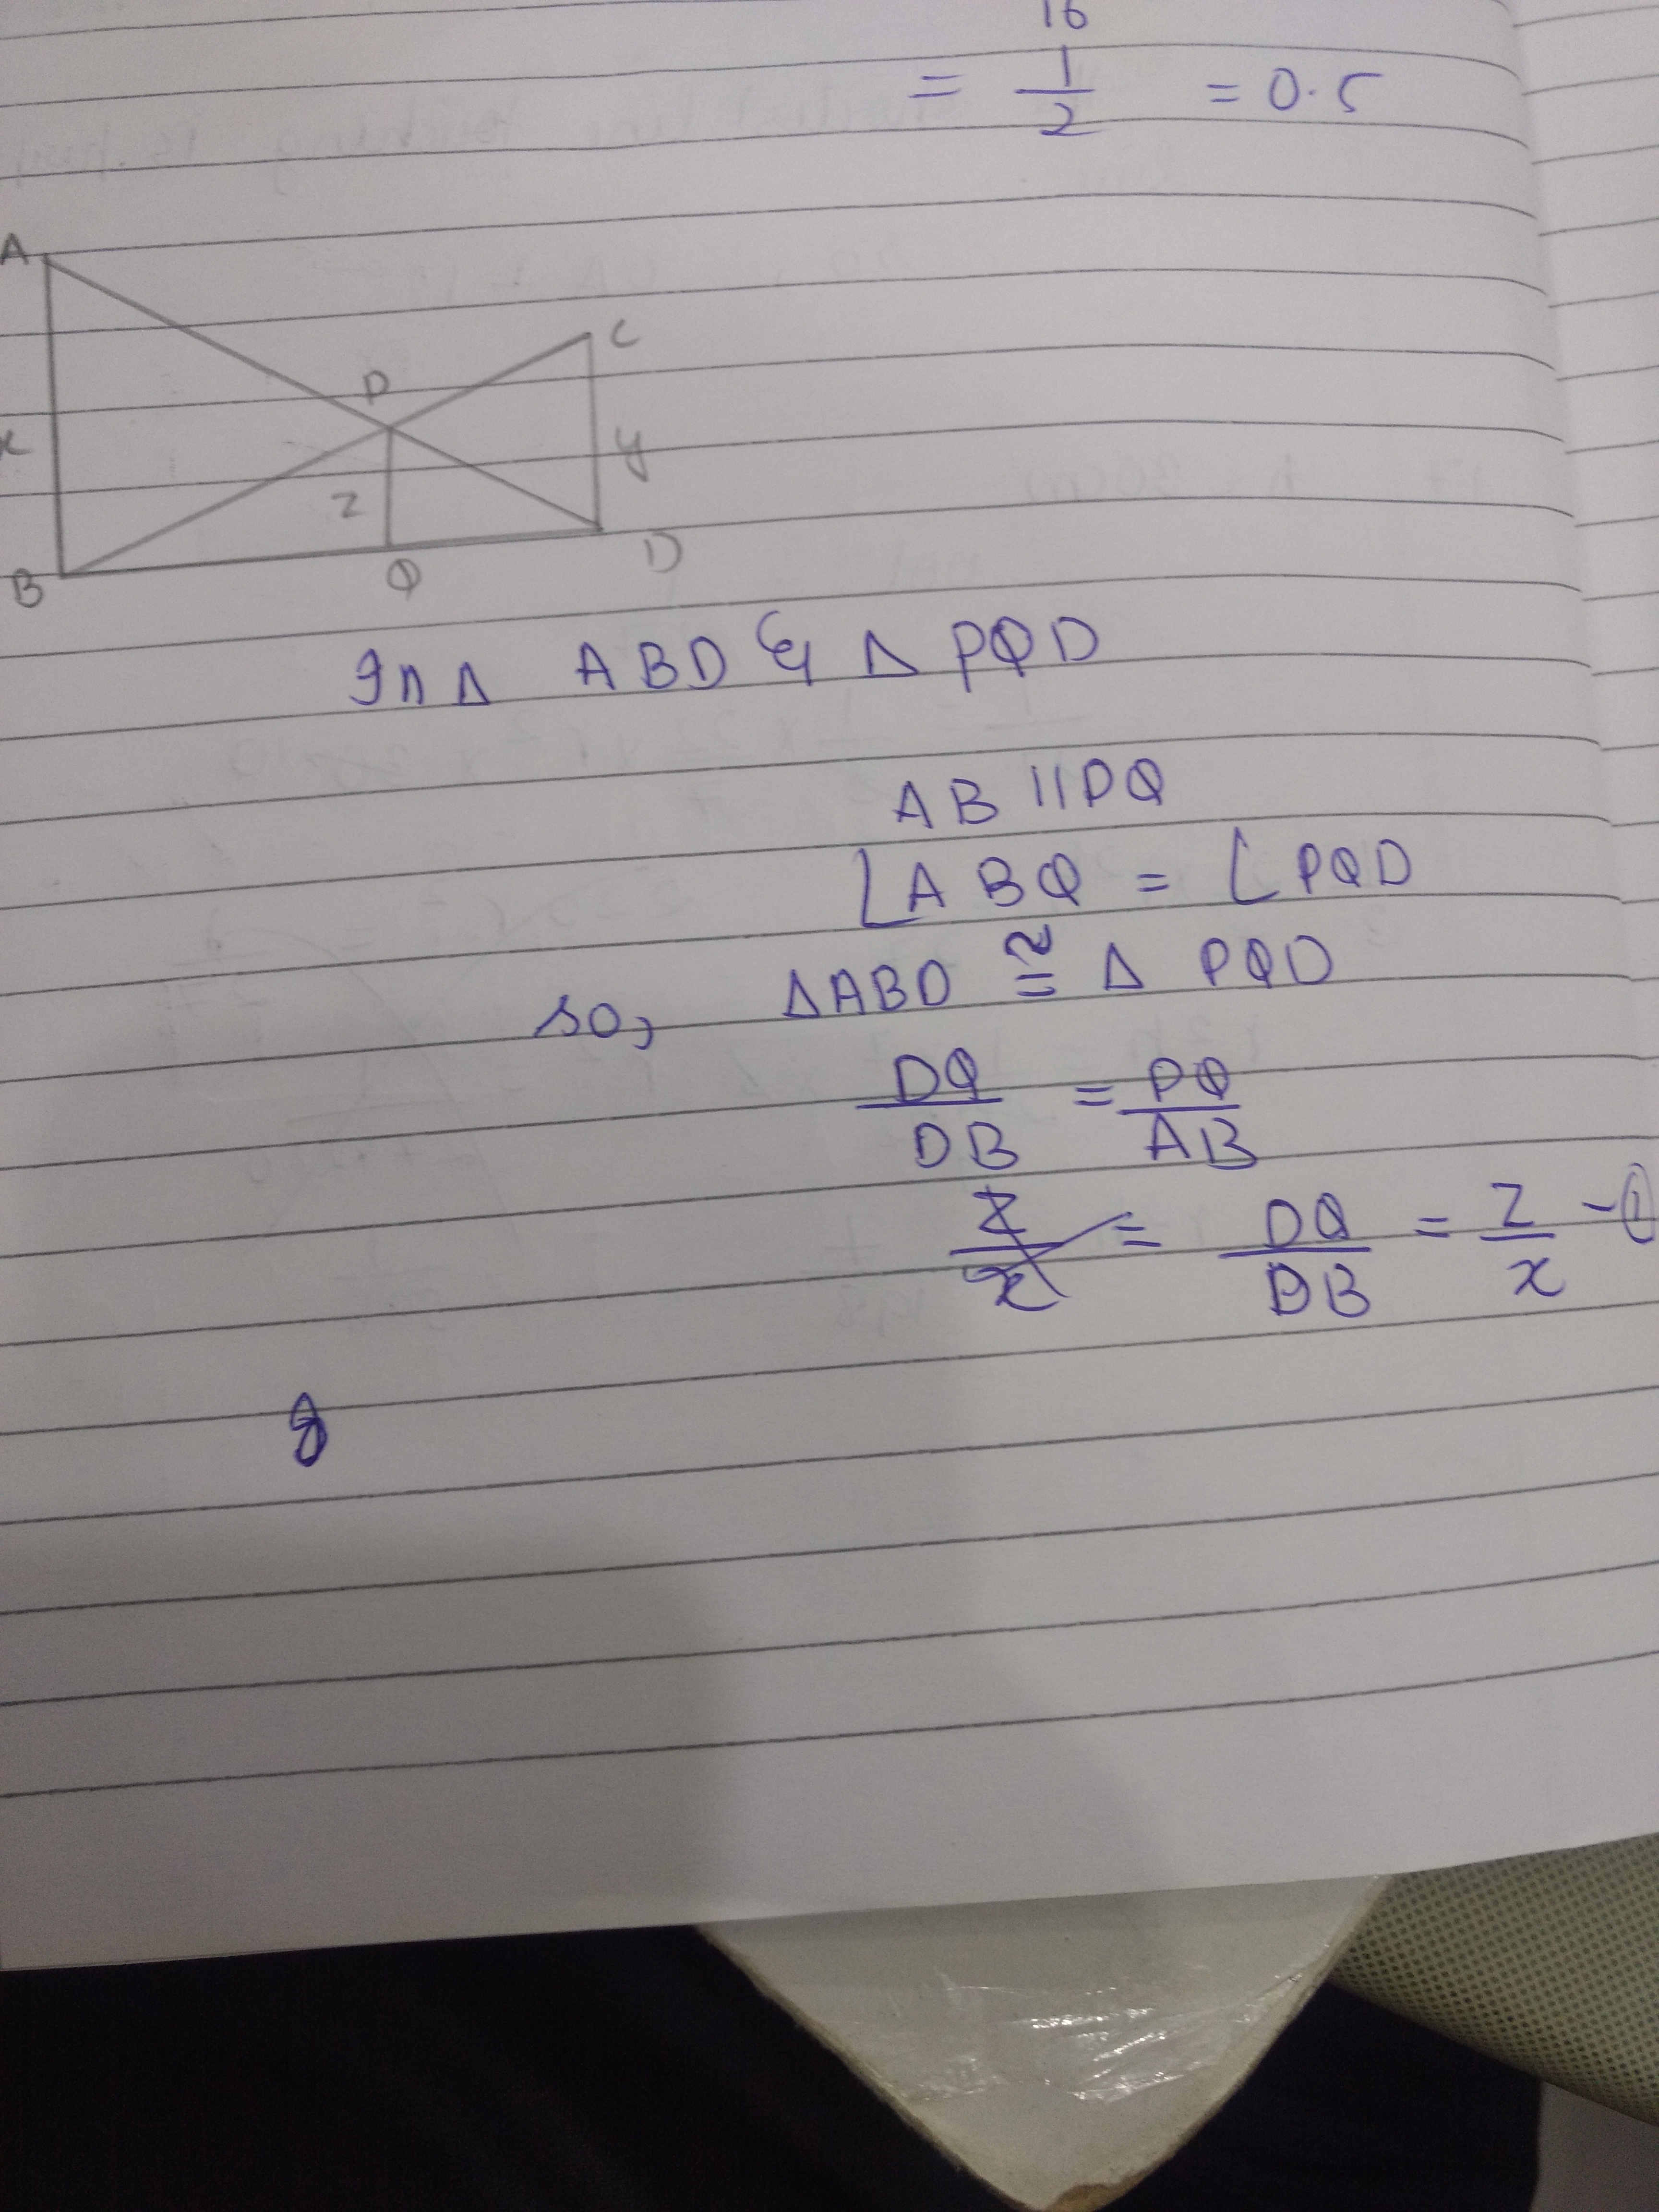 In the given figure, AB parallel to PQ parallel to CD, AB= x units